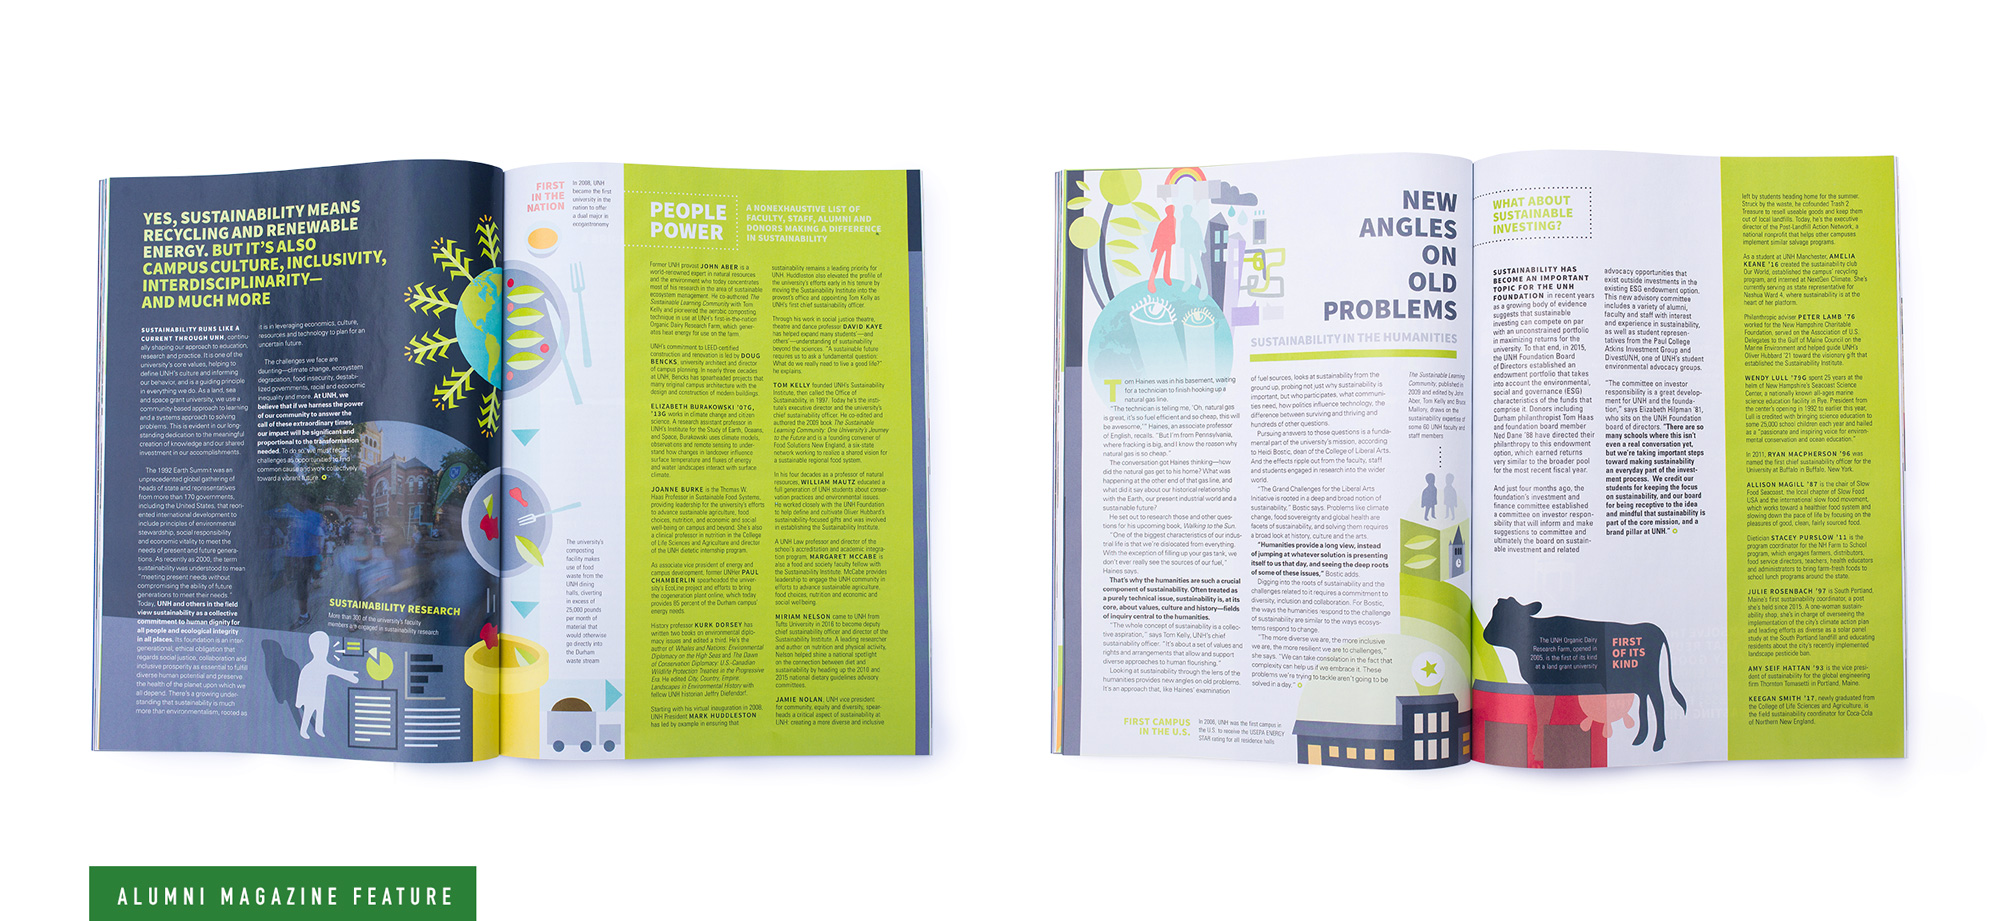 UNH Alumni Magazine Sustainability Feature Spreads 2 and 3 Design and Illustration - Loren Marple